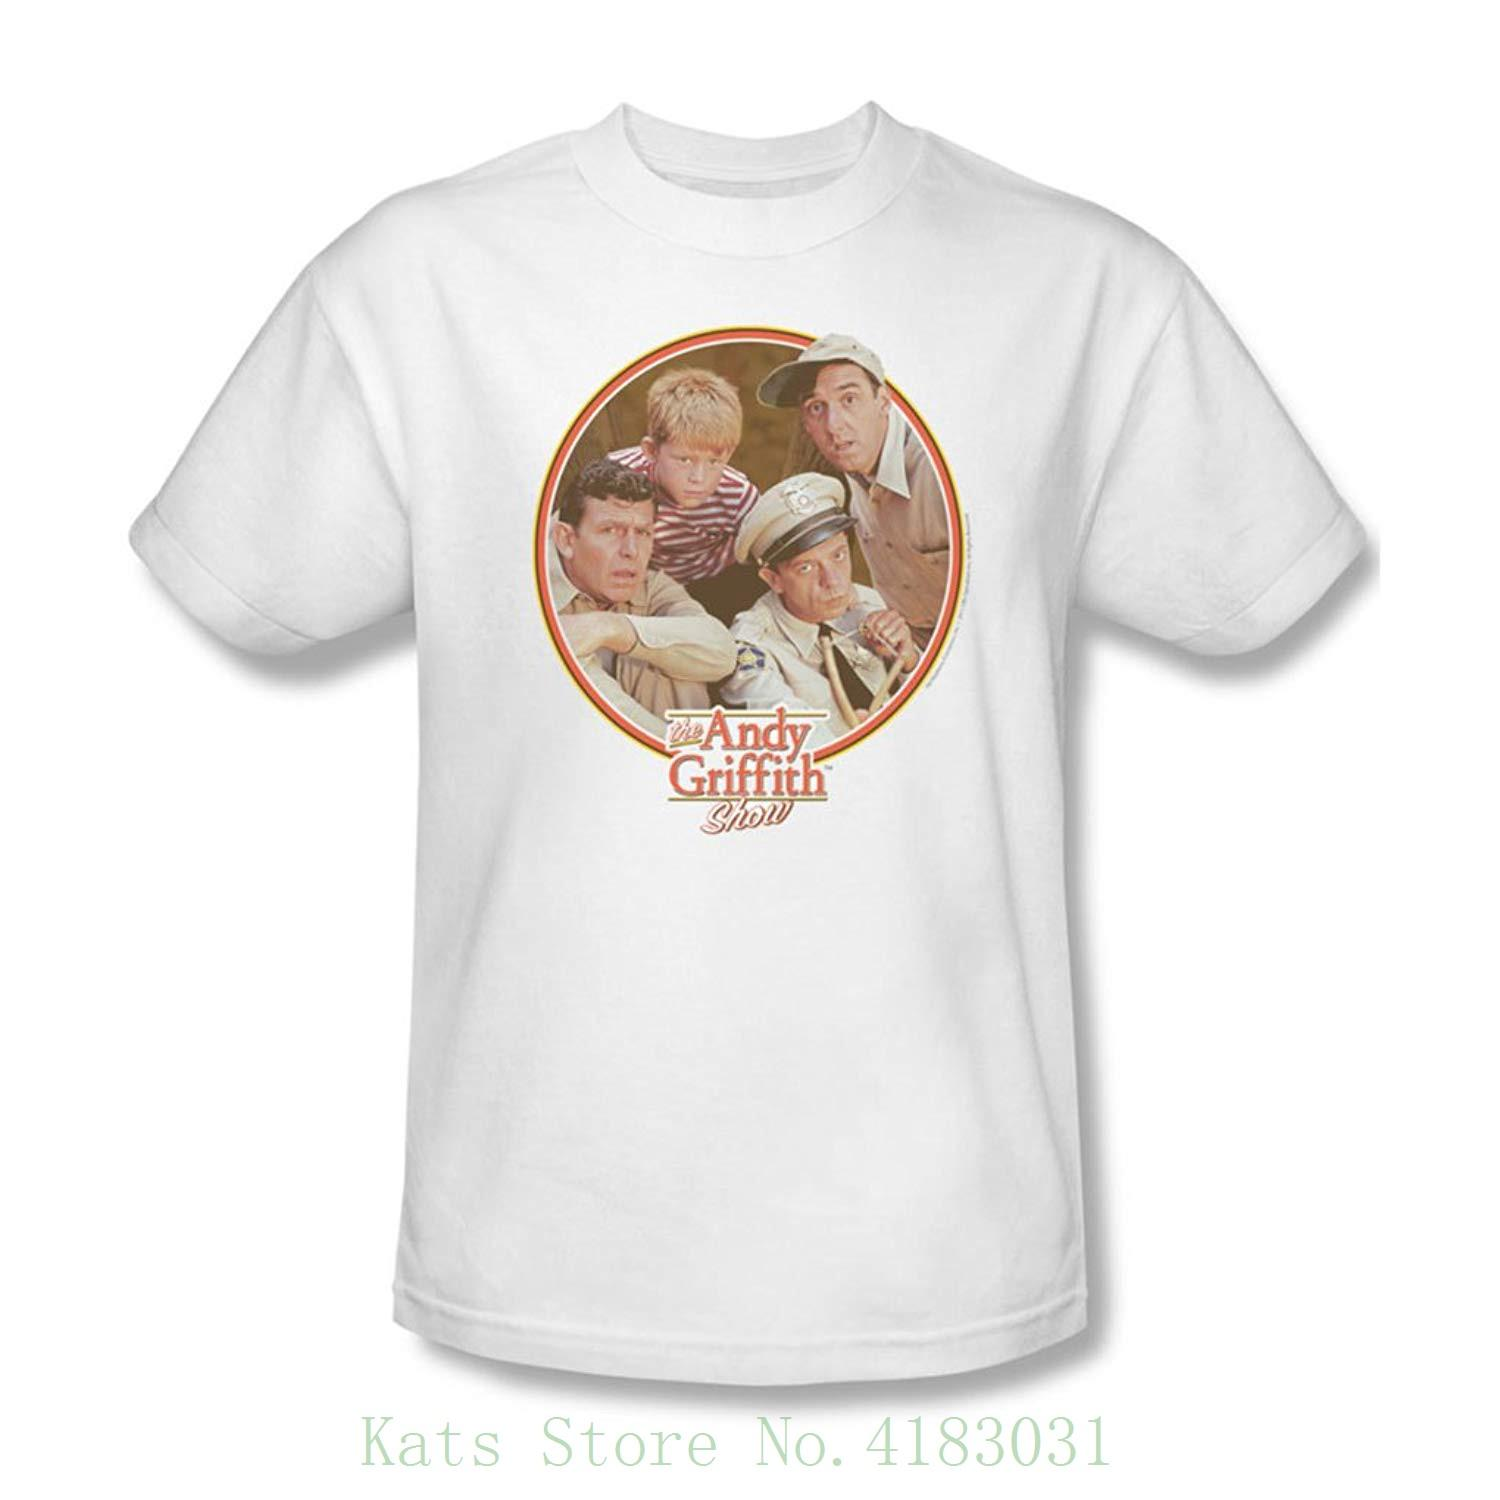 Andy griffith mens boys club t shirt in white men t shirt print cotton short sleeve t shirt online with 20 35 piece on katsstores store dhgate com